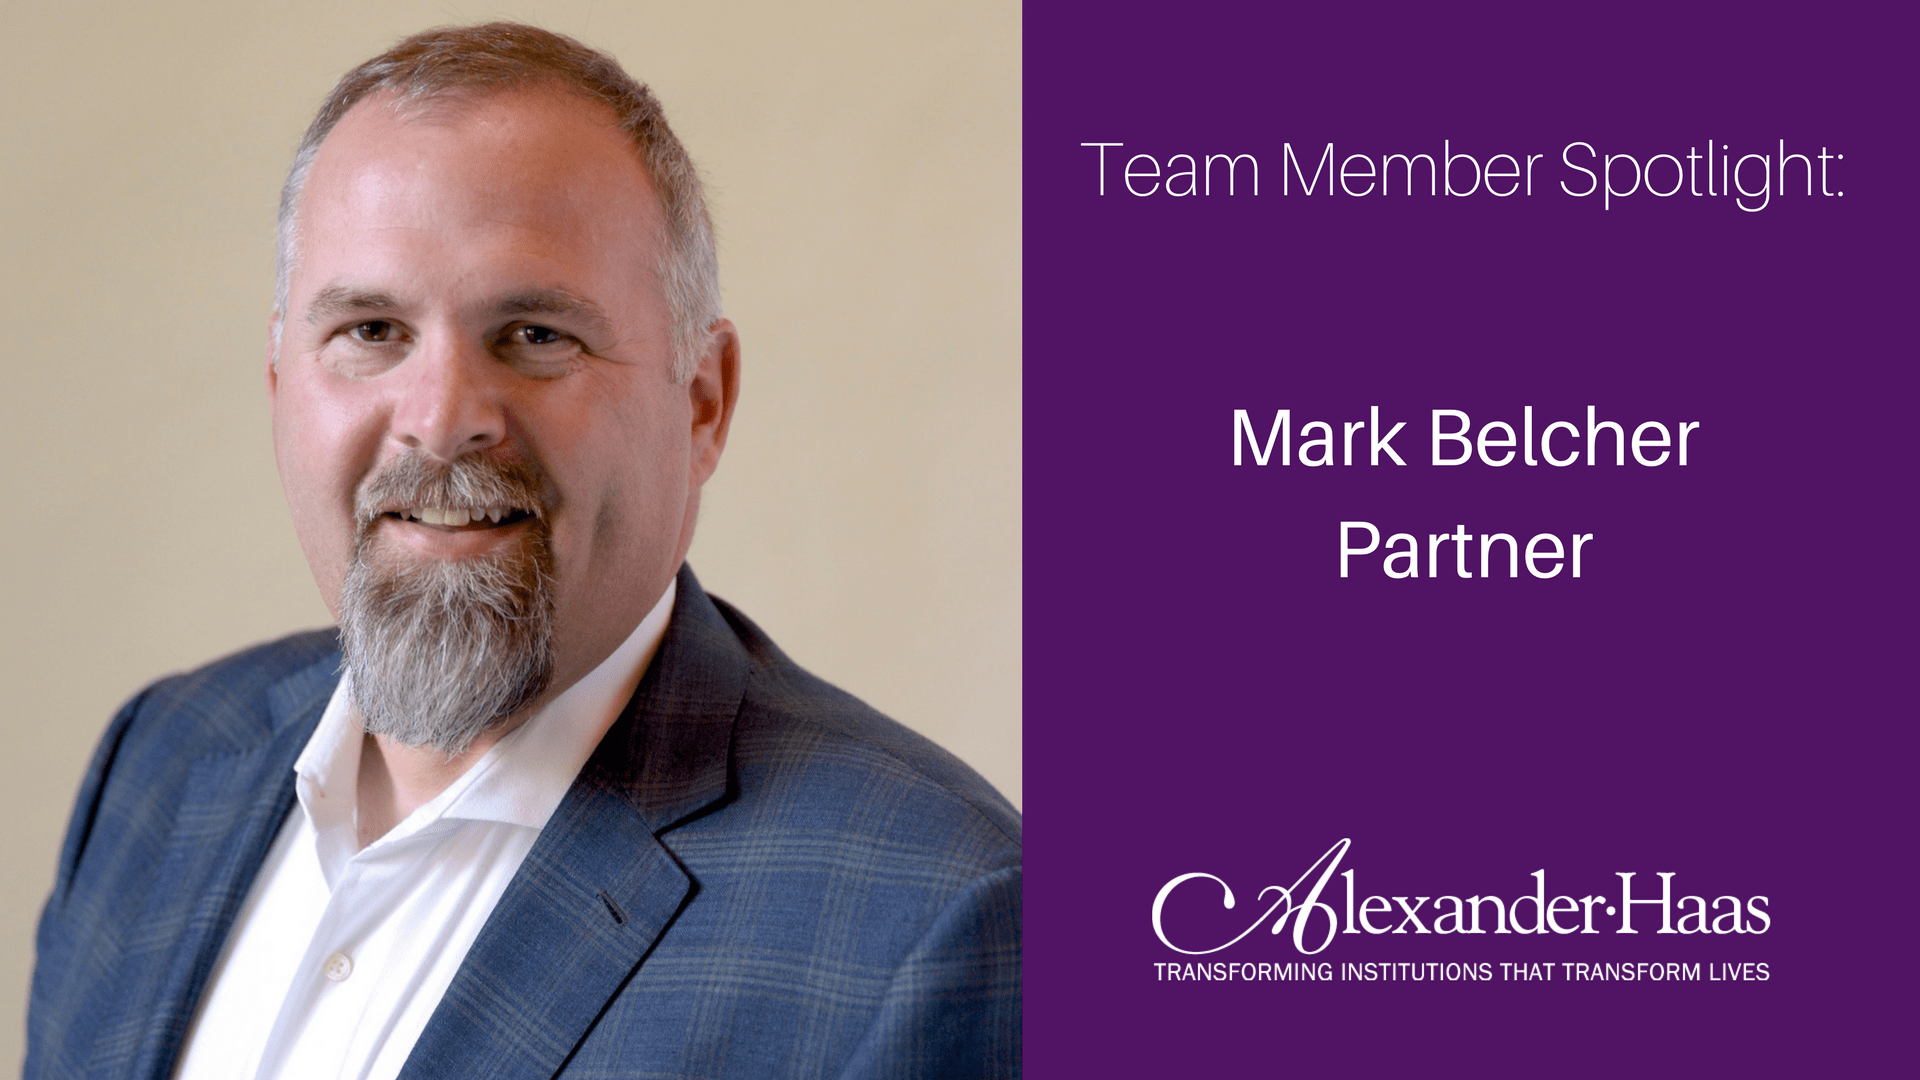 Fundraising Experts Team Member Spotlight: Mark Belcher